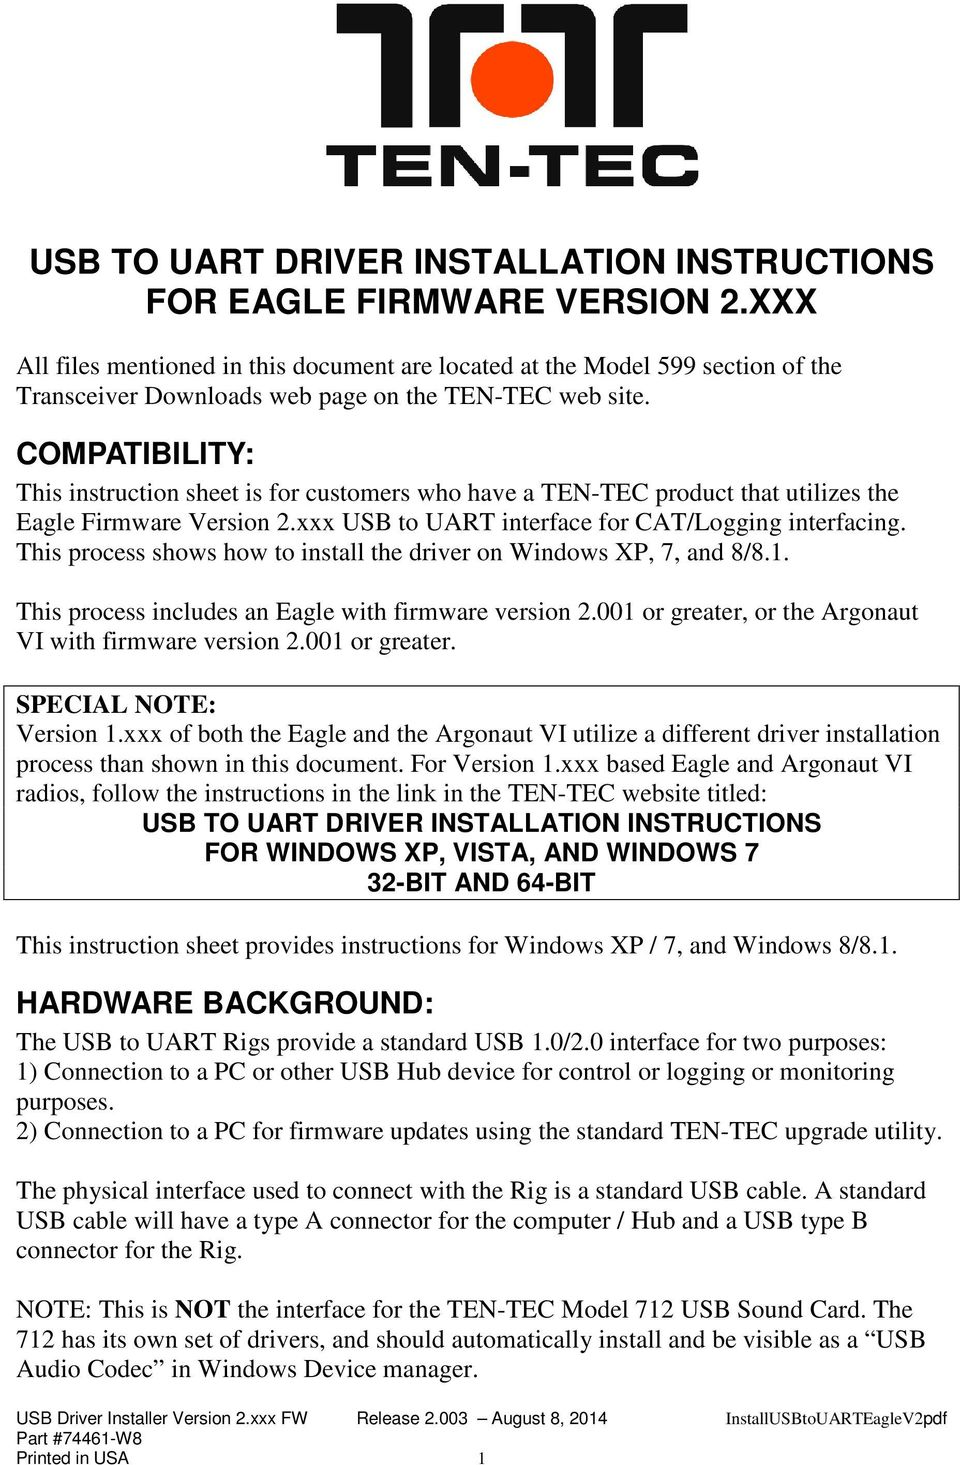 COMPATIBILITY: This instruction sheet is for customers who have a TEN-TEC product that utilizes the Eagle Firmware Version 2.xxx USB to UART interface for CAT/Logging interfacing.